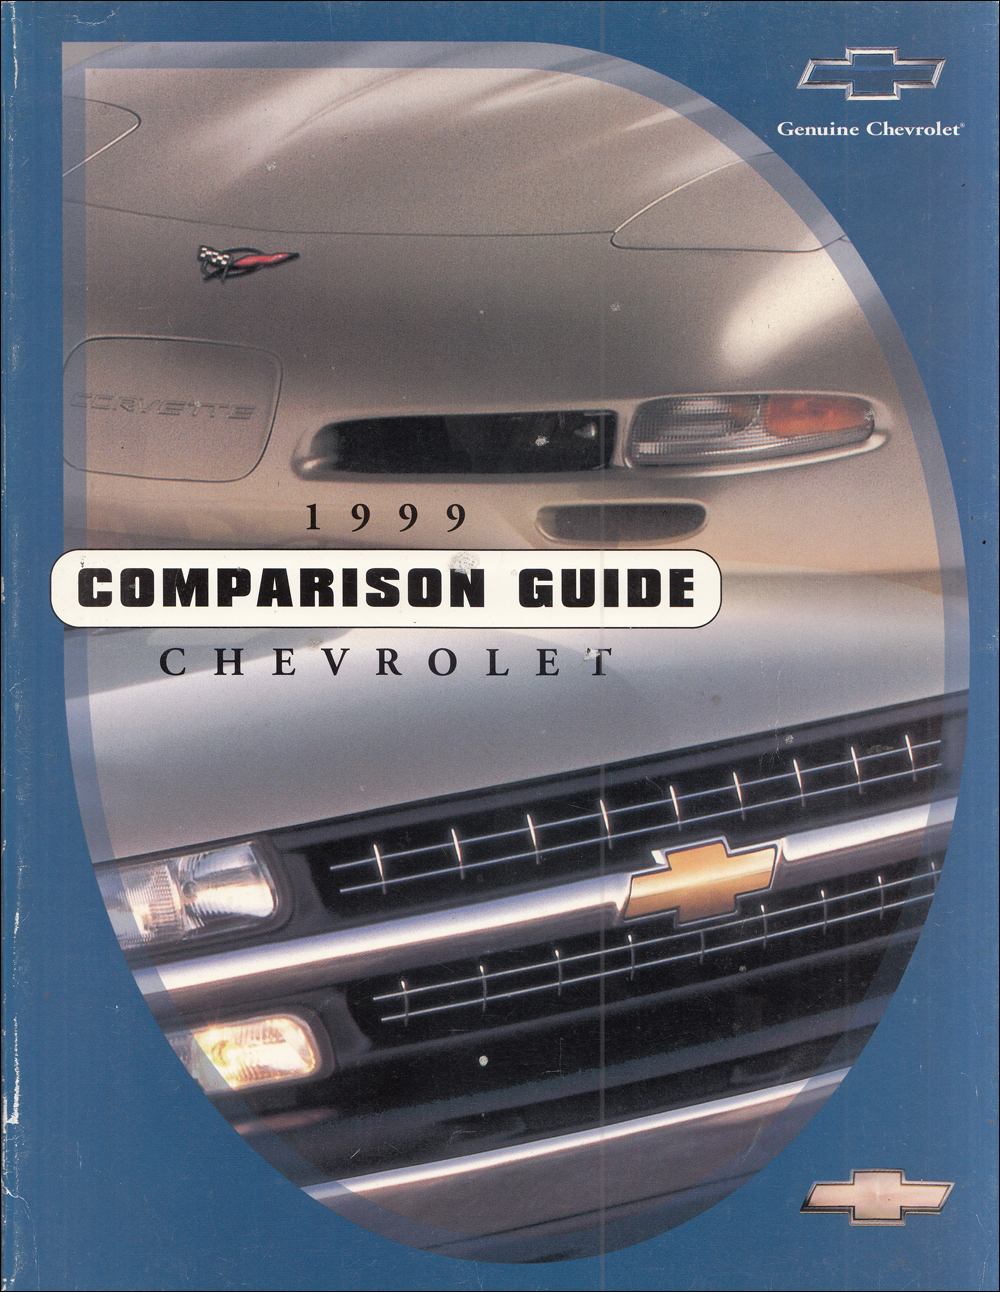 1999 Chevrolet Competitive Comparison Dealer Album Original